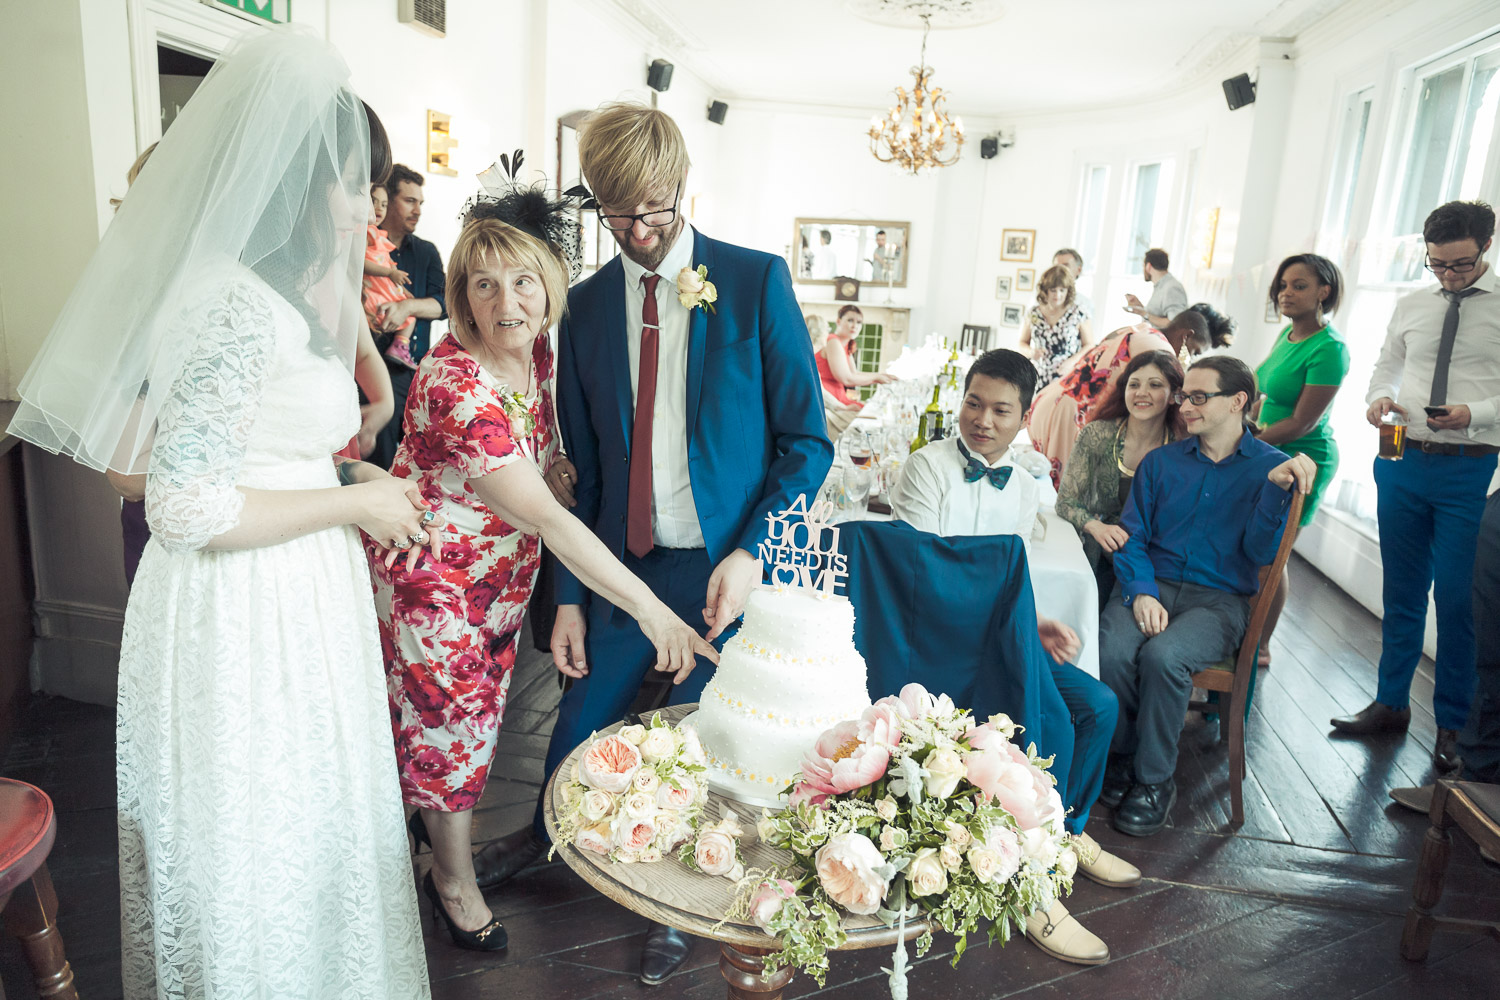 burgh-house-hampstead-north-london-wedding-0291.jpg